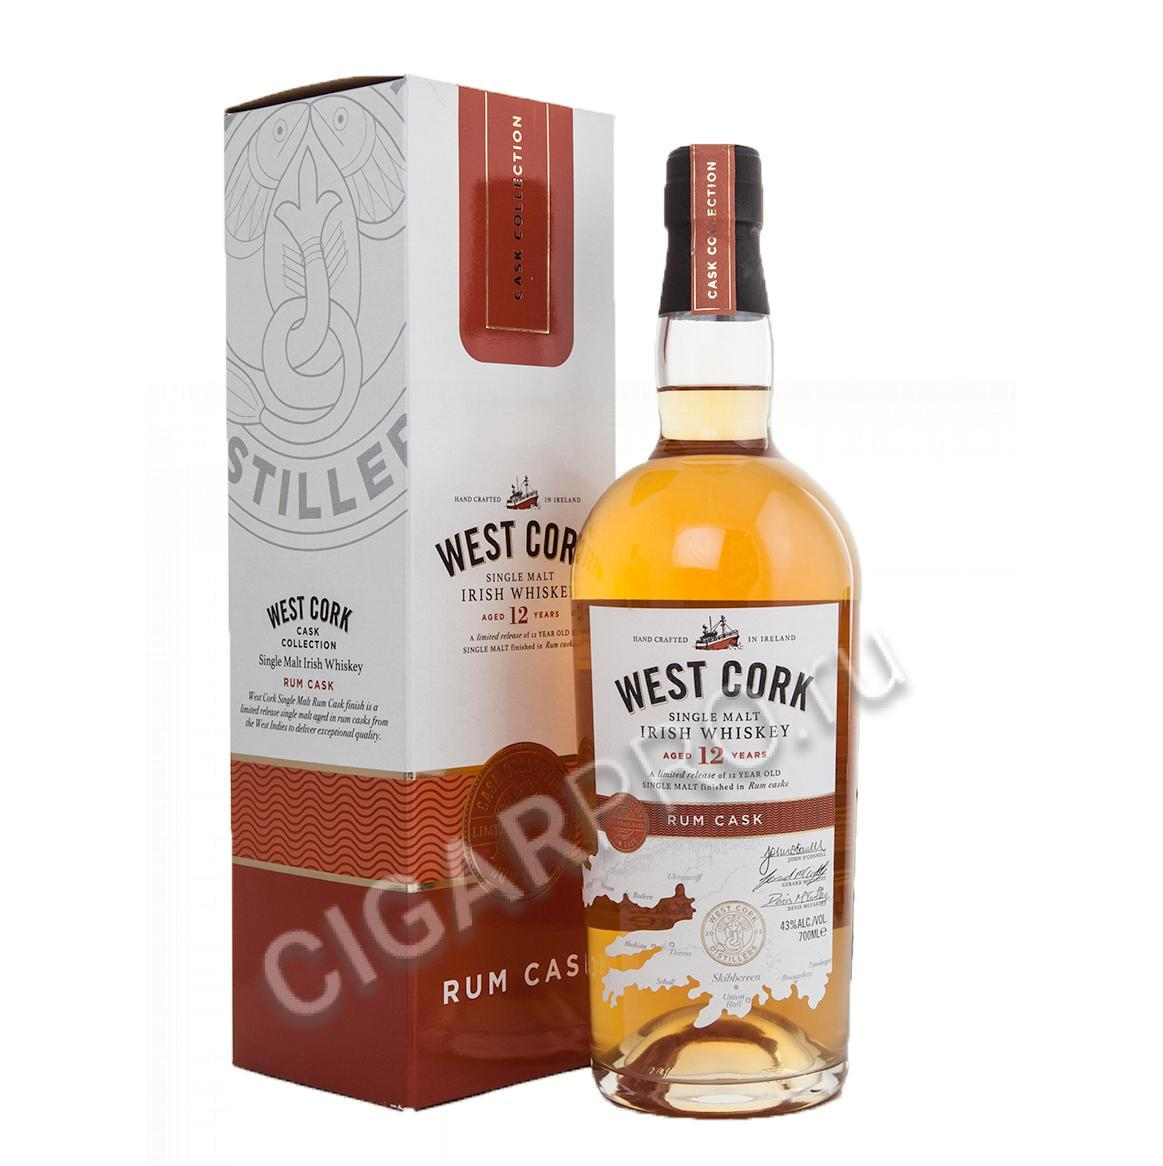 West Cork 12 years Rum Cask Виски Вест Корк 12 лет Ром Каск